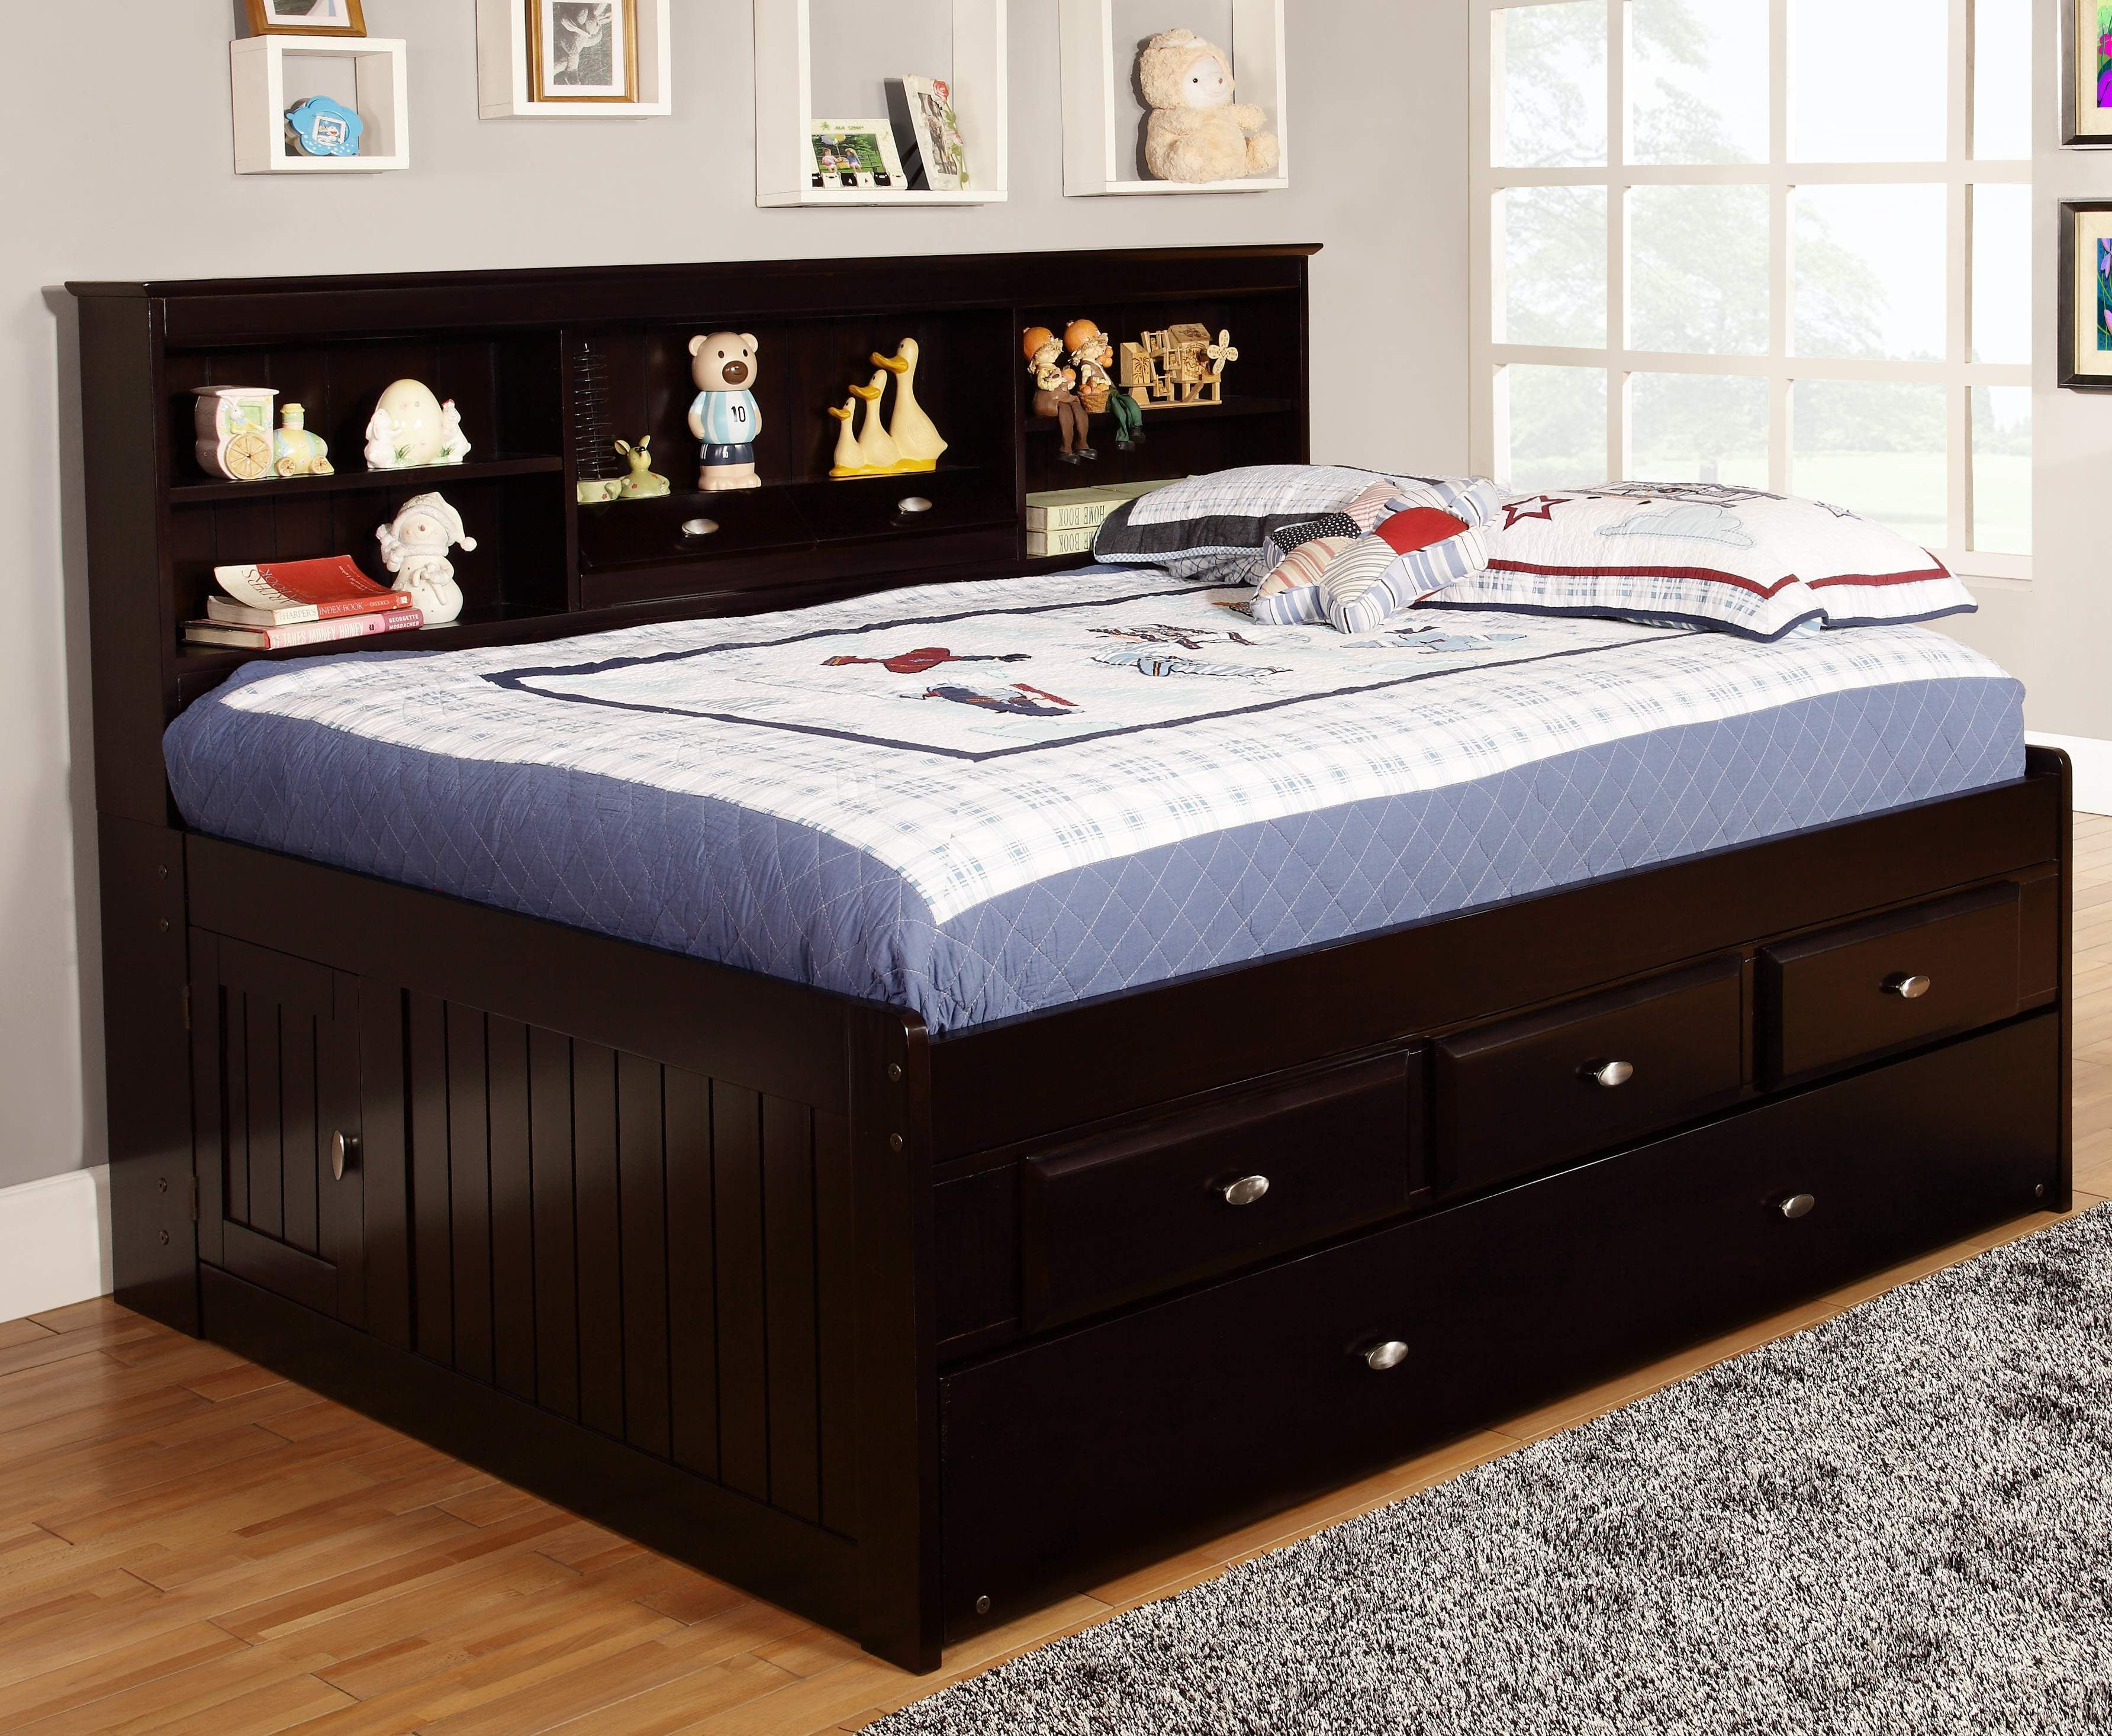 In order to design a space saving bedroom you need to